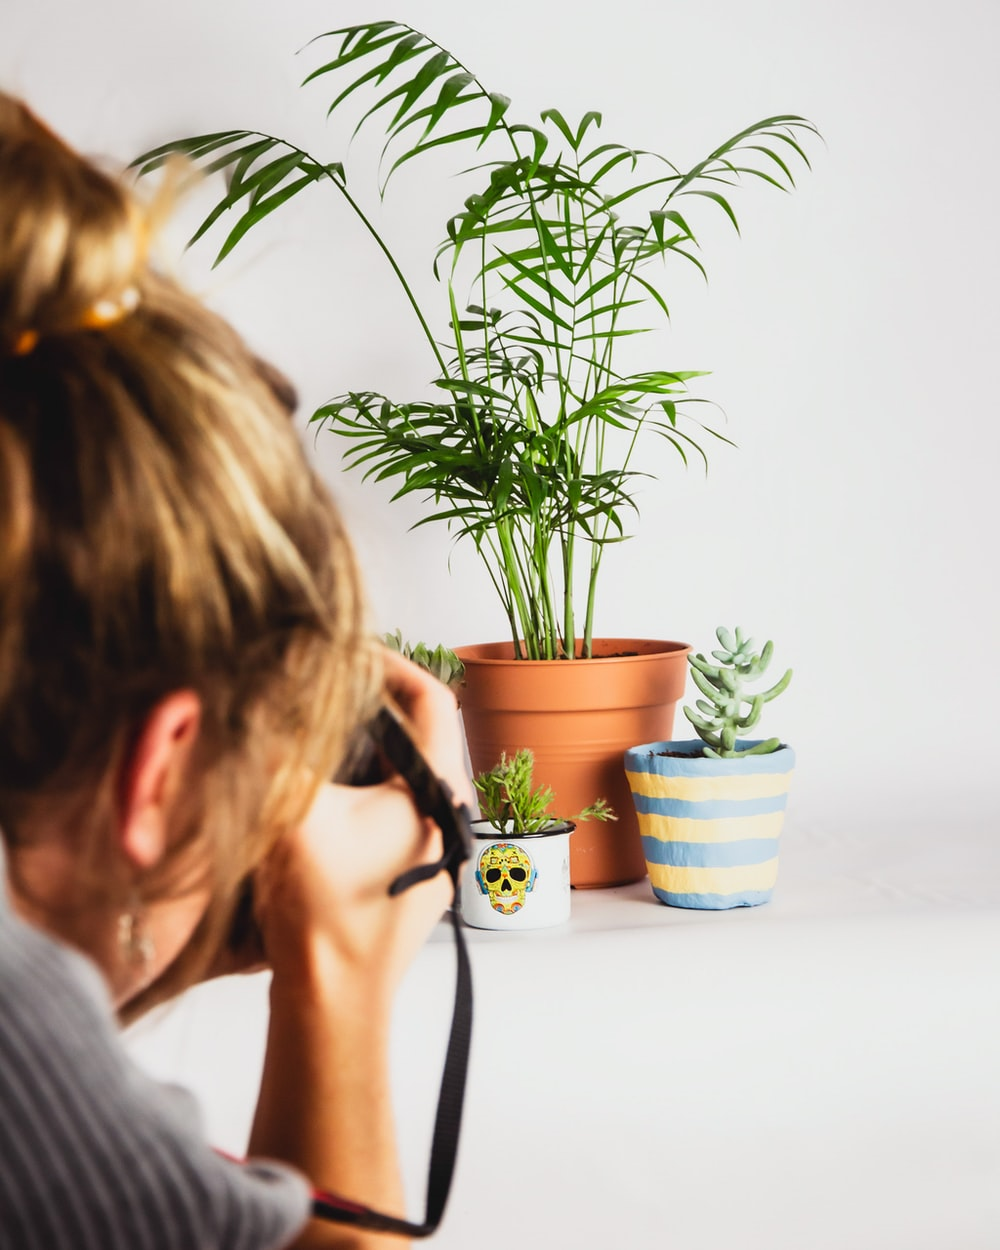 woman in gray shirt holding black ceramic mug with green plant